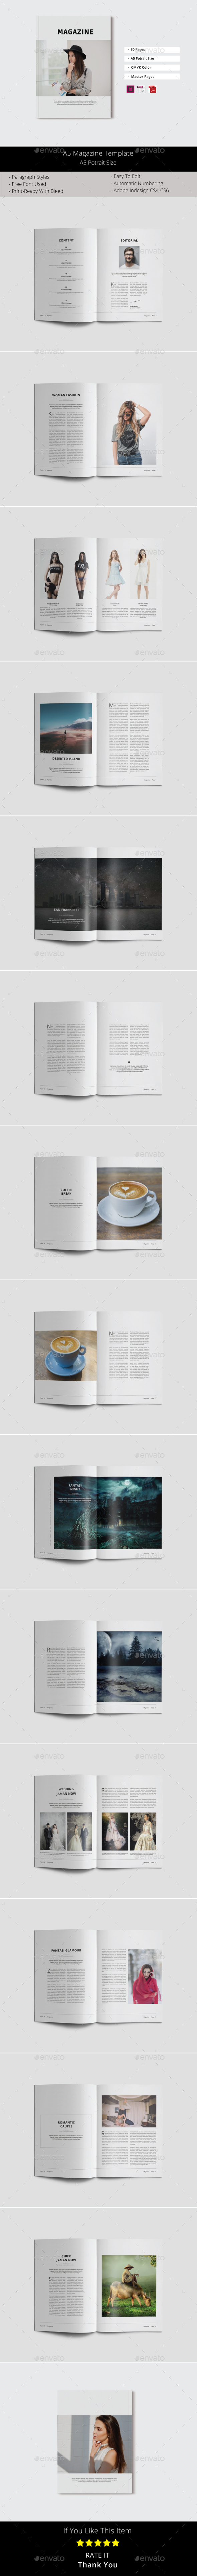 A5 Magazine Template - Magazines Print Templates